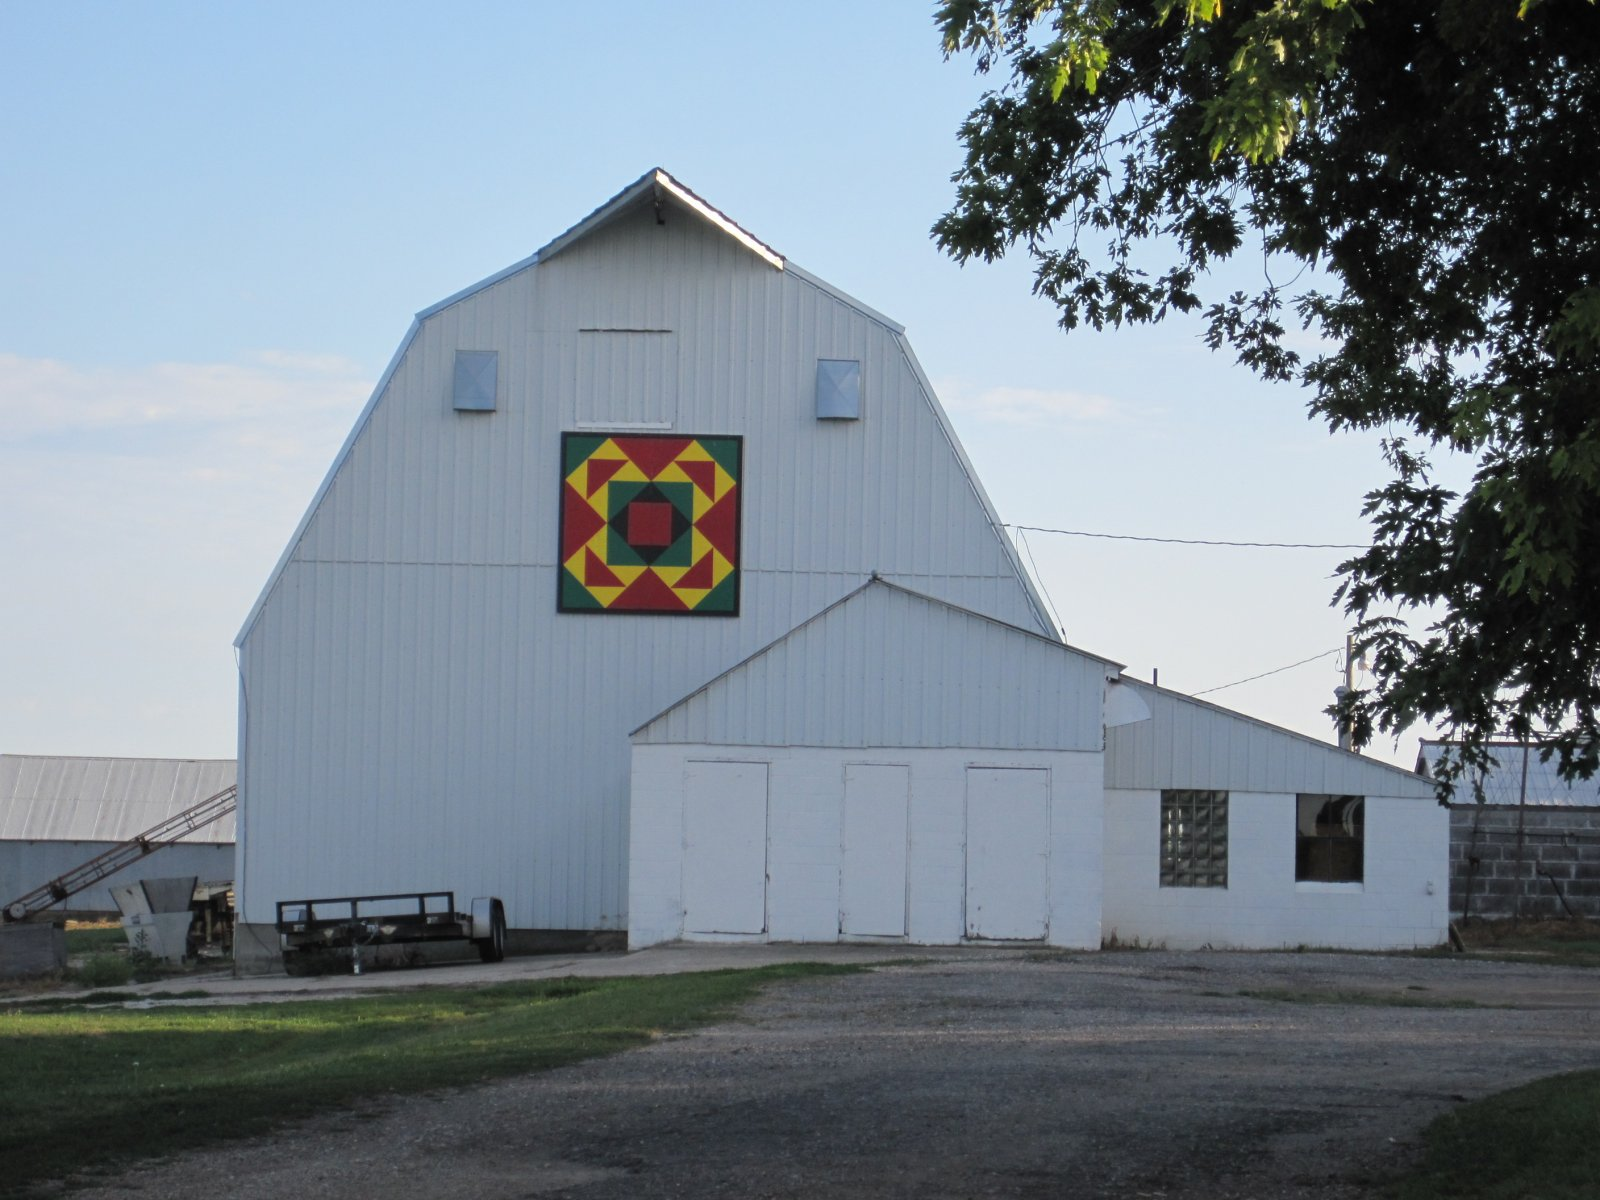 Click image for larger version  Name:Apring Beauty Barn Quilt.jpg Views:44 Size:257.9 KB ID:139059